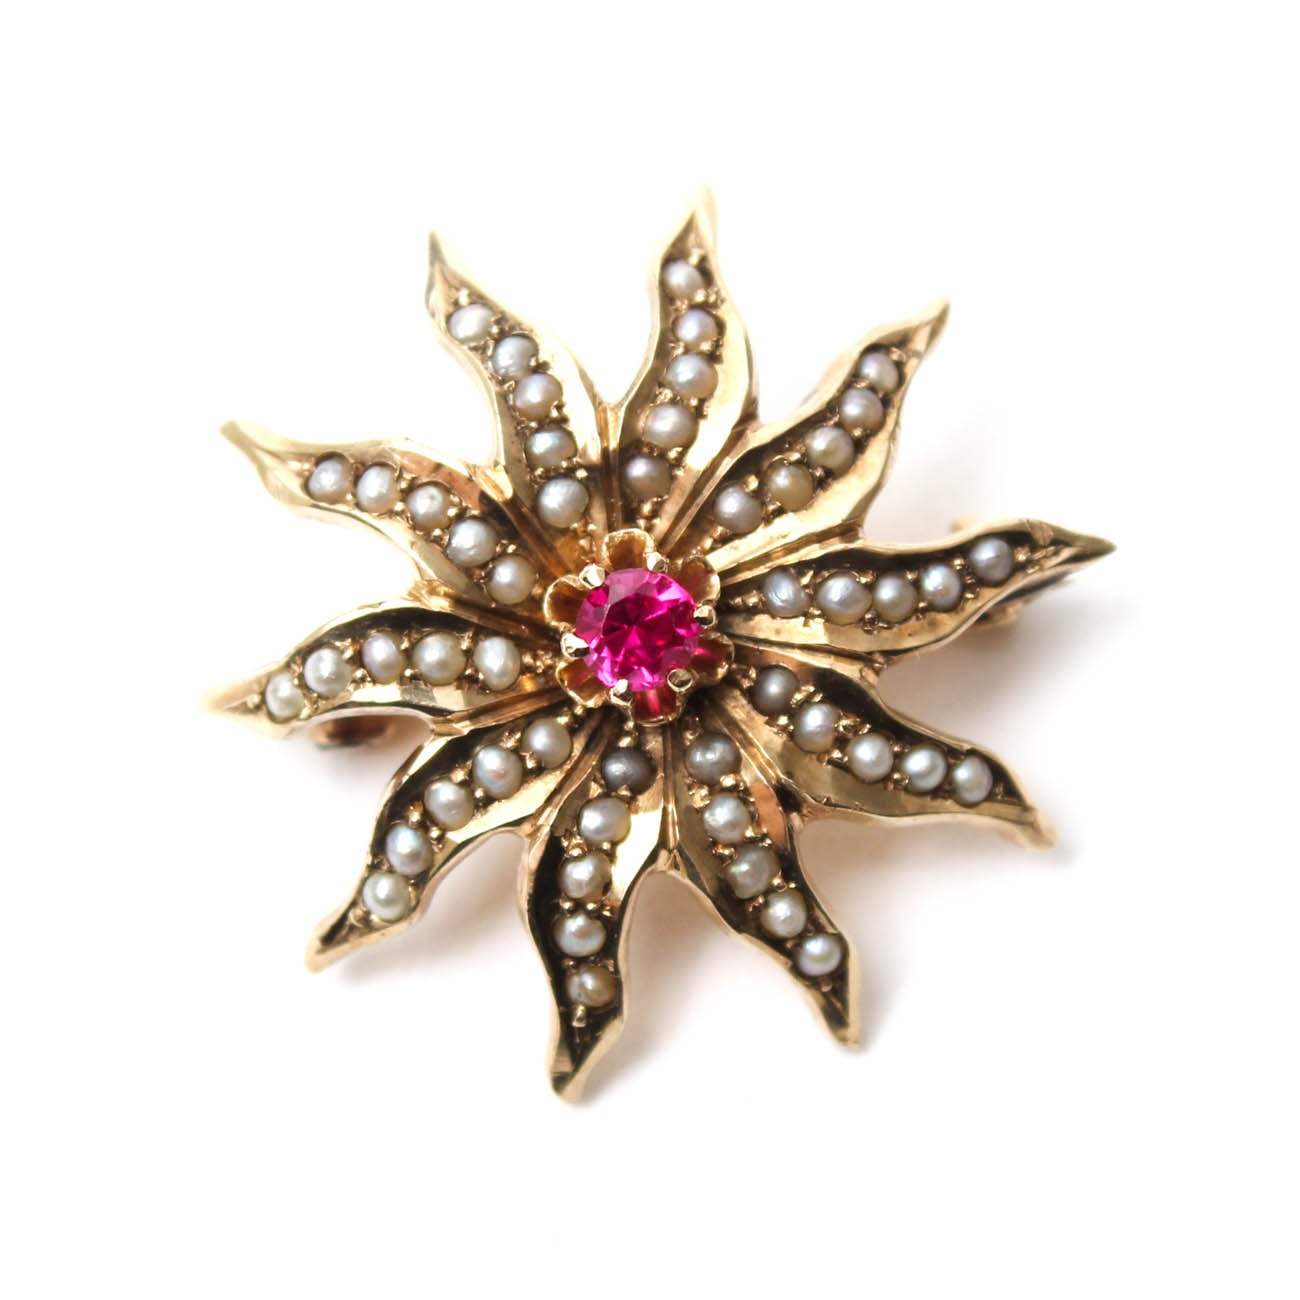 10K Yellow Gold Antique Ruby and Pearl Flower Brooch